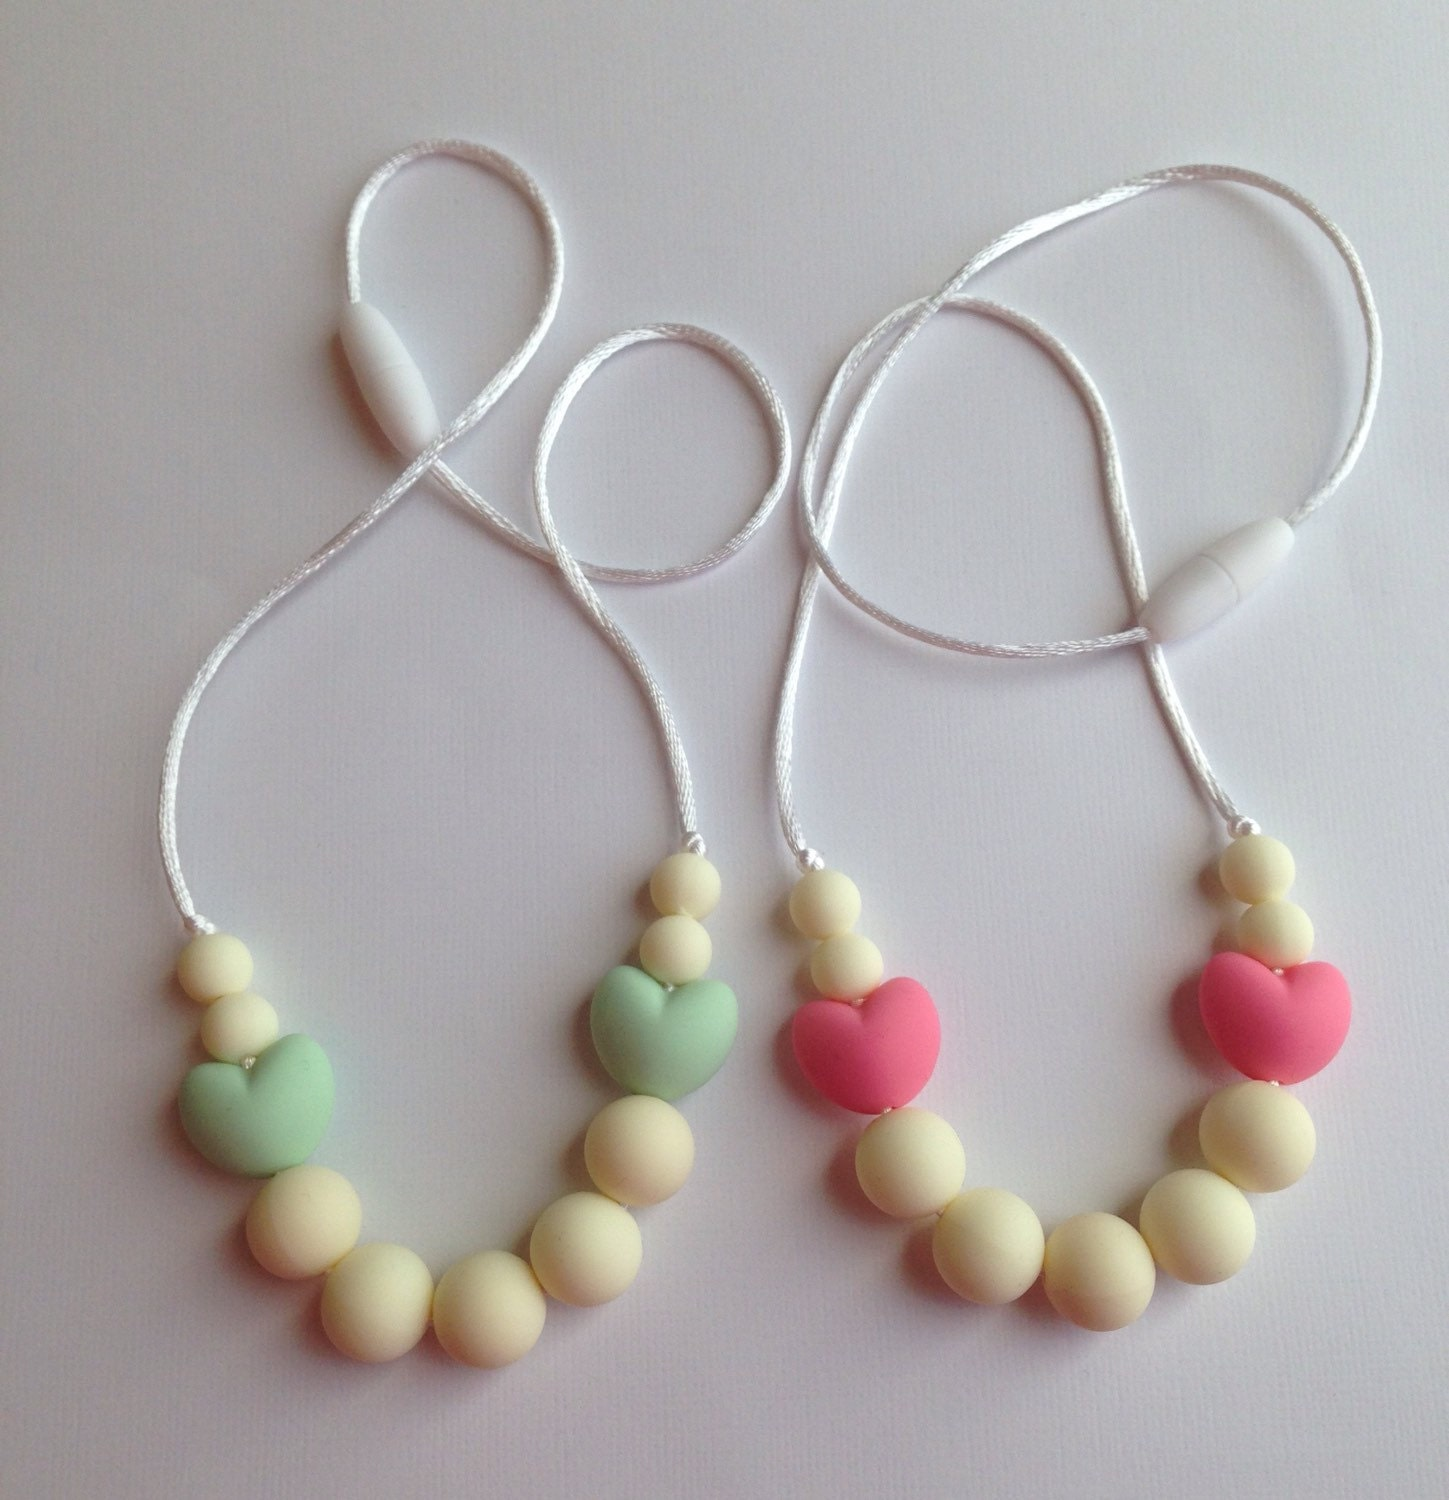 Beads Necklace Beads: Toddler Silicone Necklace Silicone Teething Beads Little